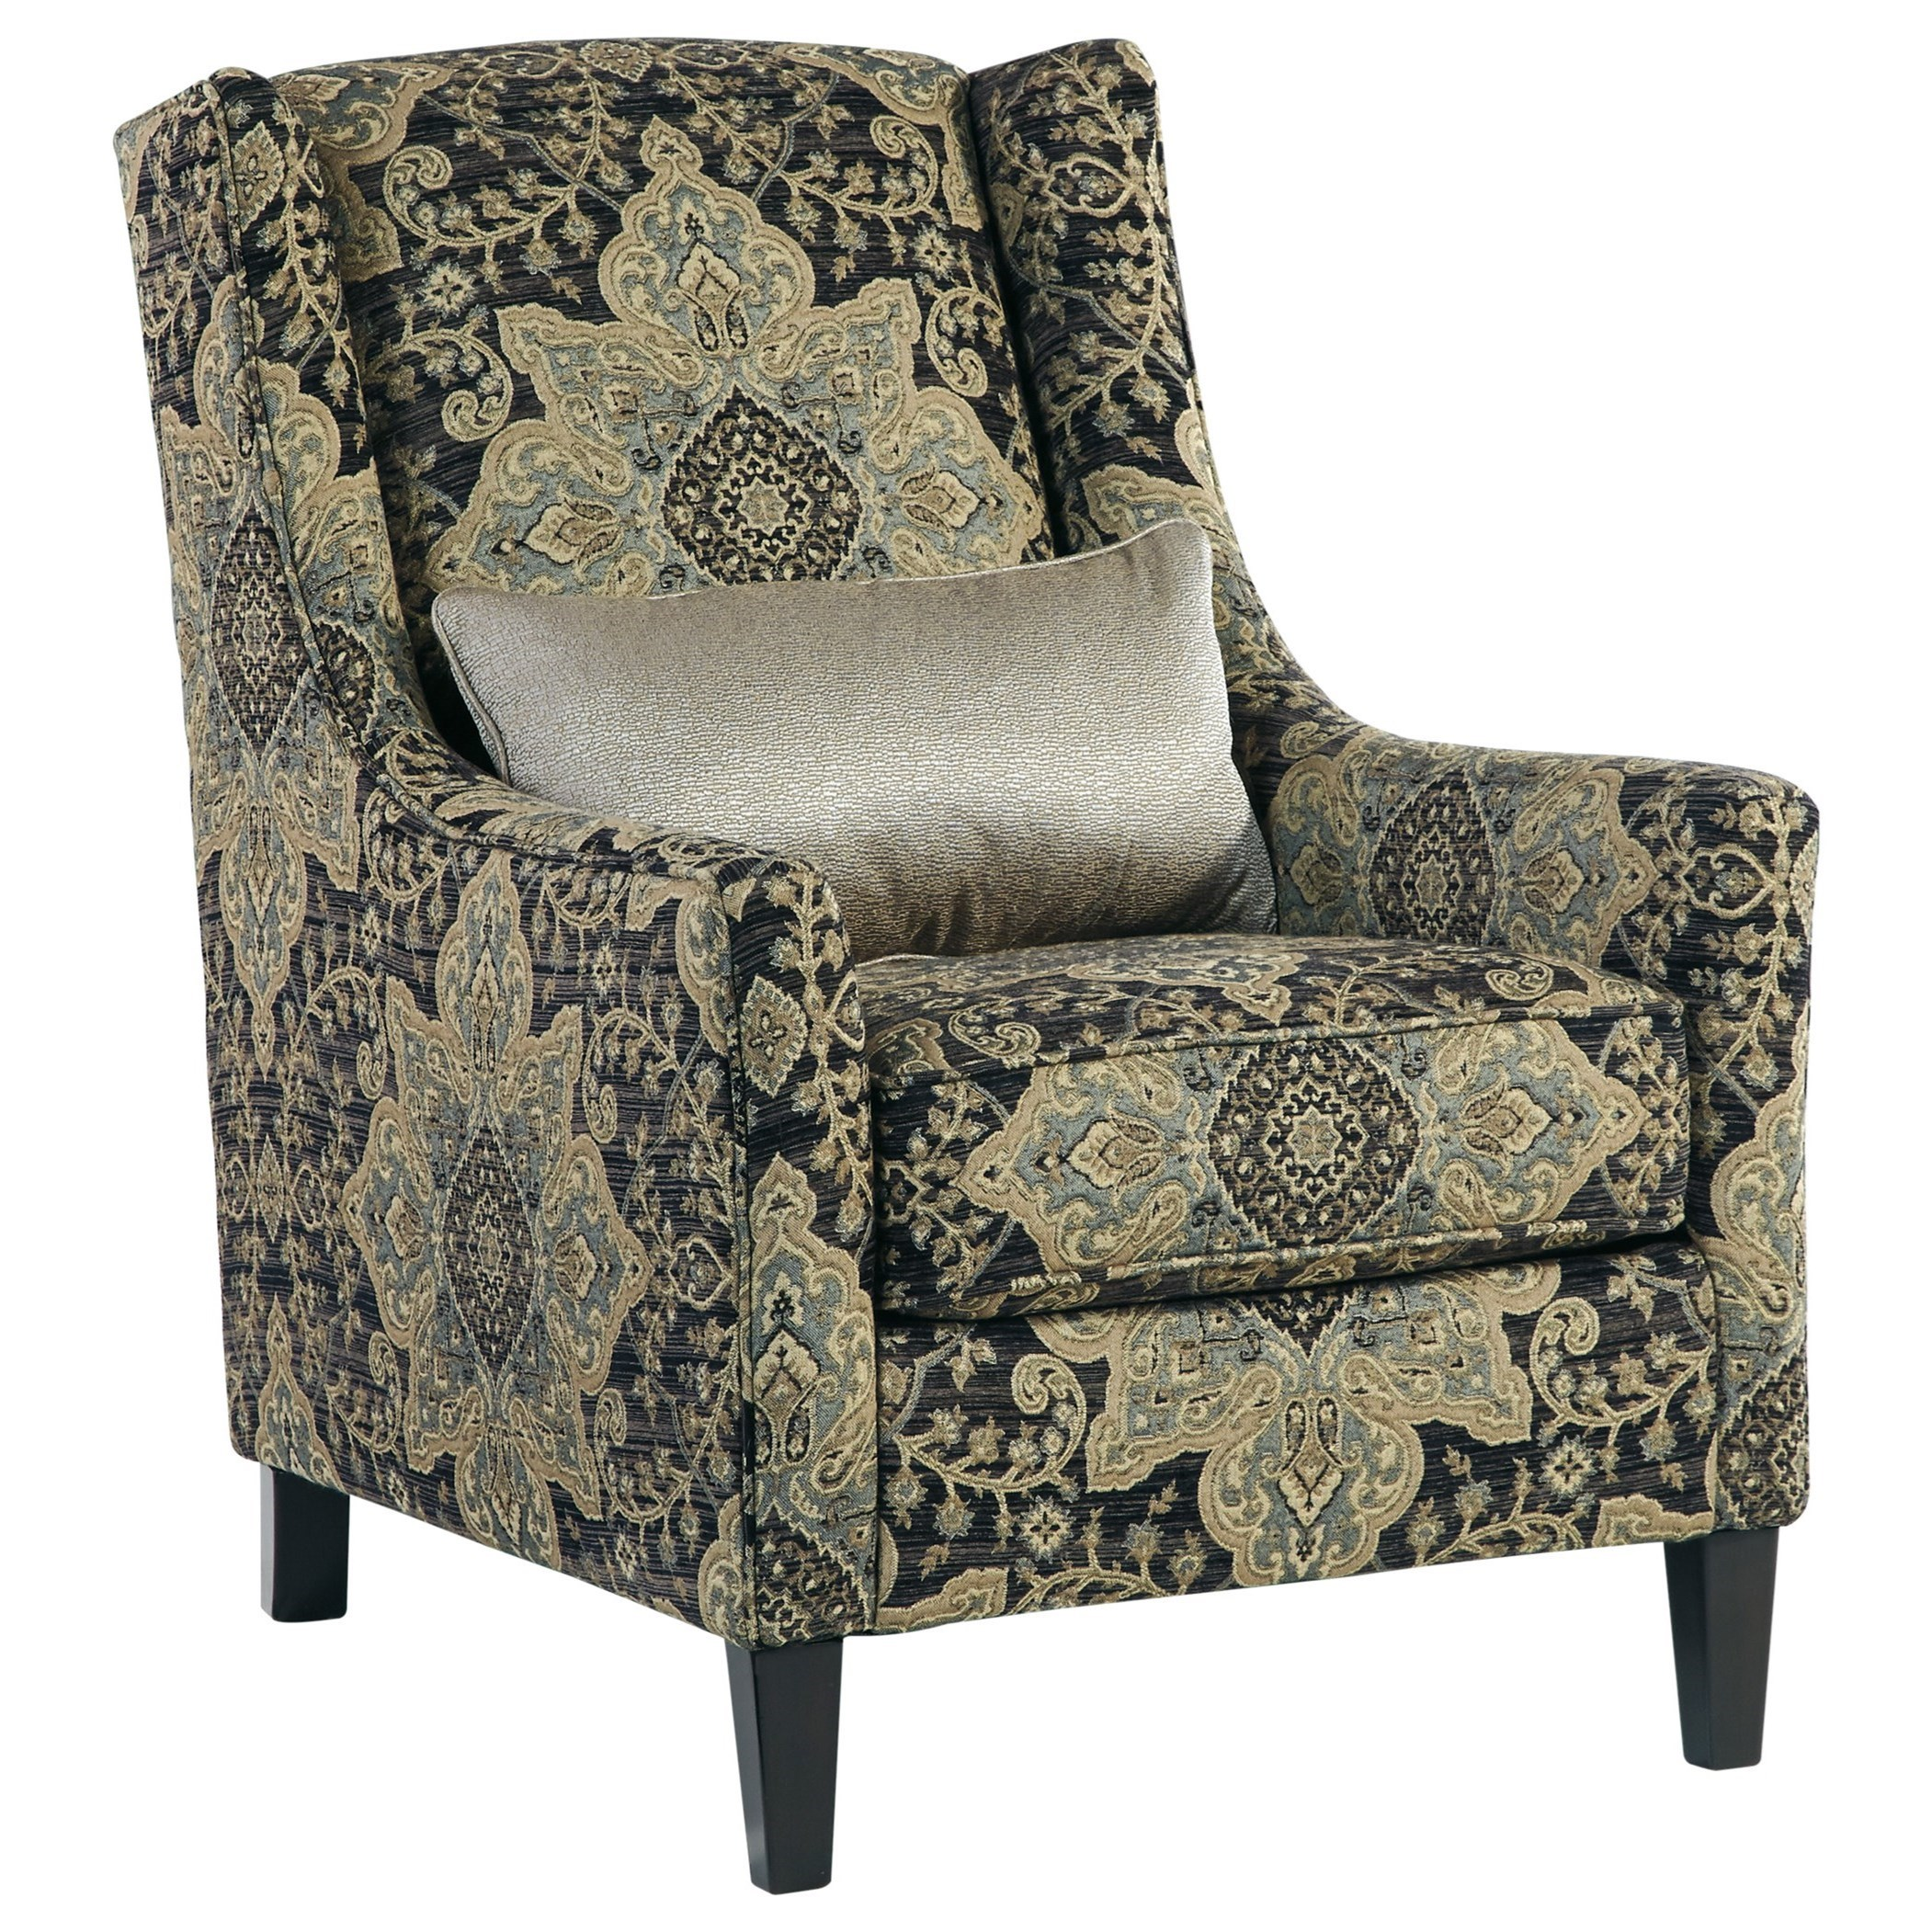 Ashley Furniture Hartigan Accent Chair with Wing Back and Accent